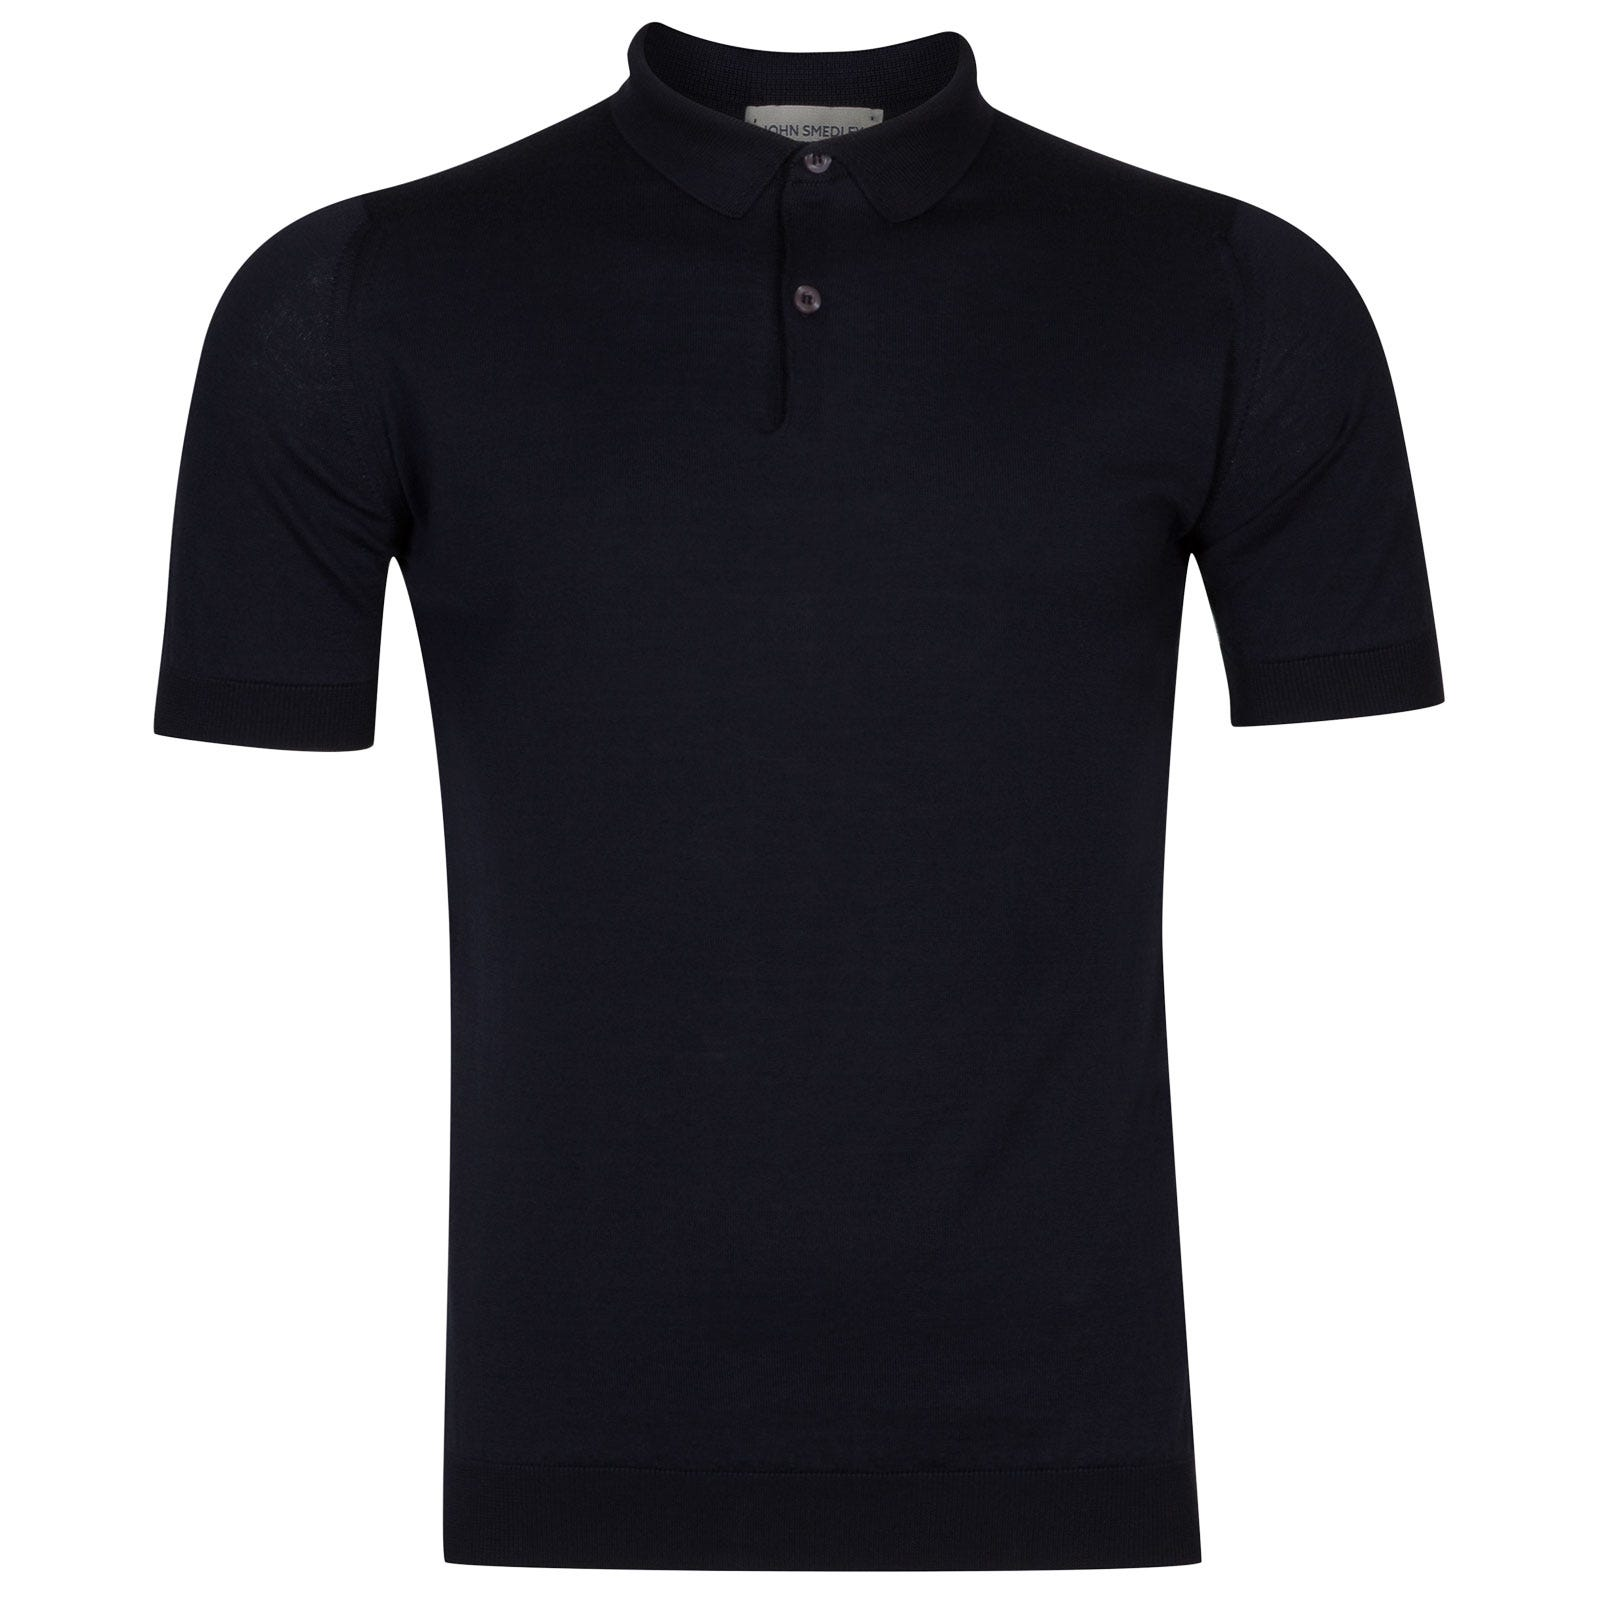 John Smedley rhodes Sea Island Cotton Shirt in Navy-S